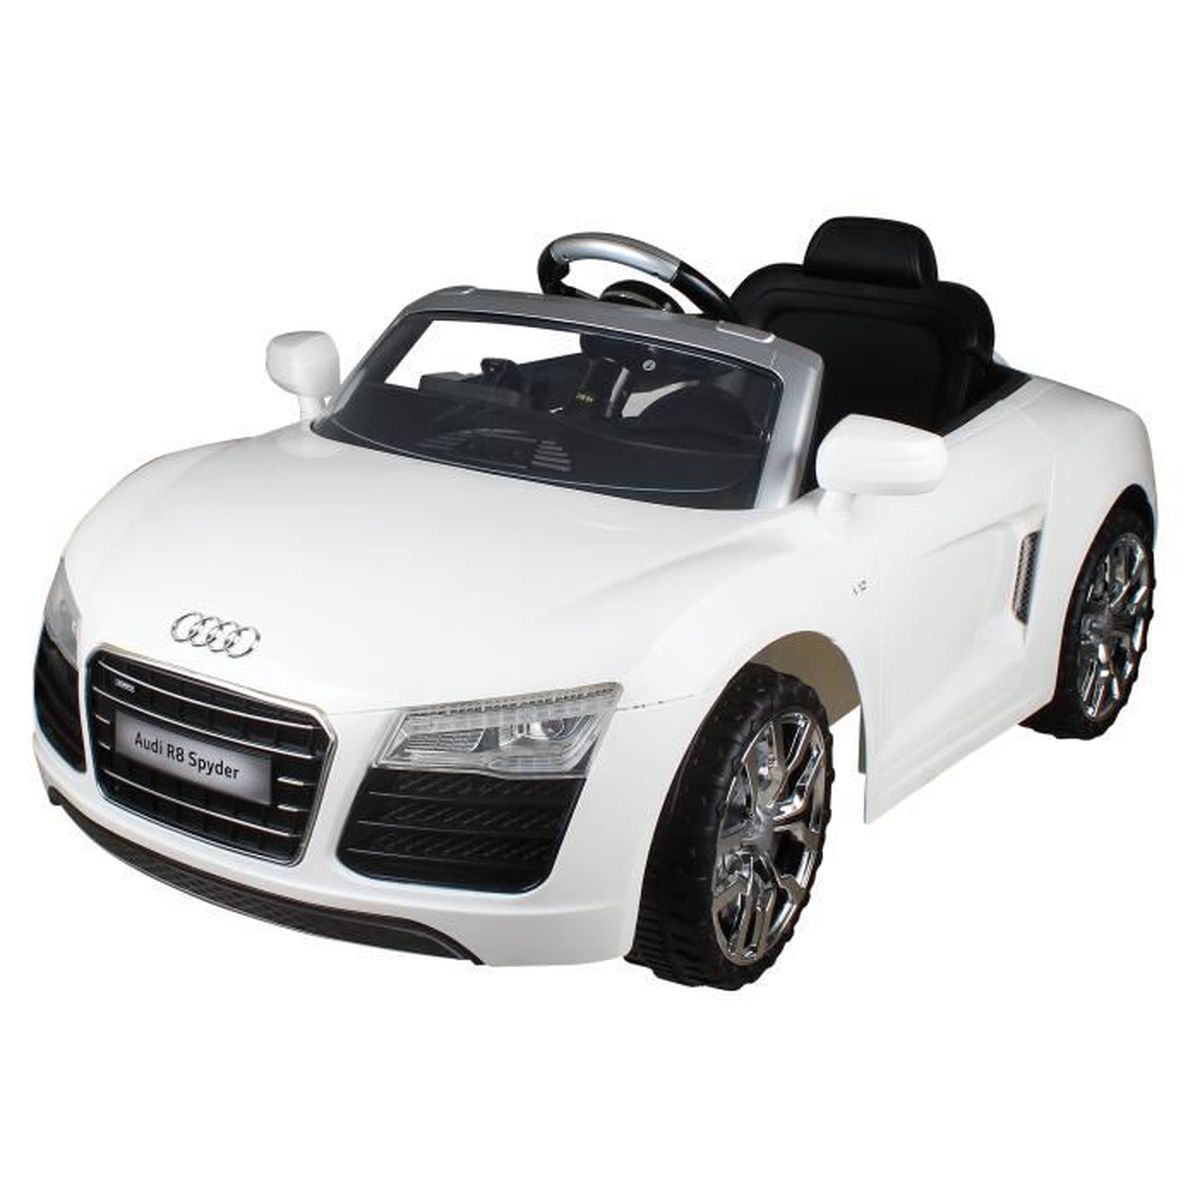 audi r8 spyder voiture lectrique enfants v hicule batterie et t l commande 12v achat vente. Black Bedroom Furniture Sets. Home Design Ideas